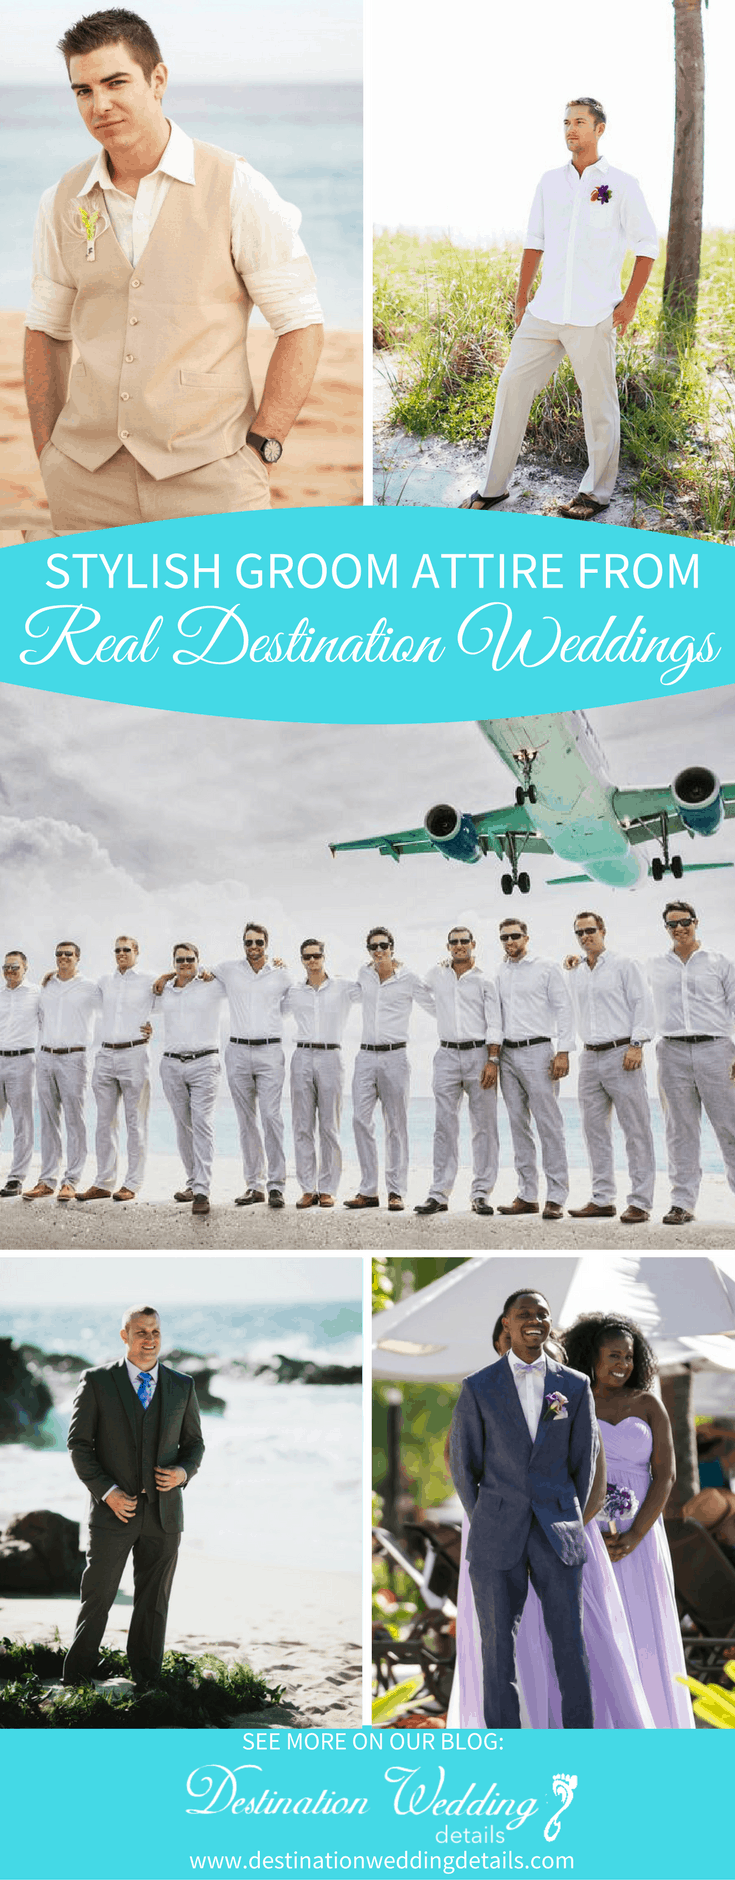 Destination Wedding Groom attire pinterest